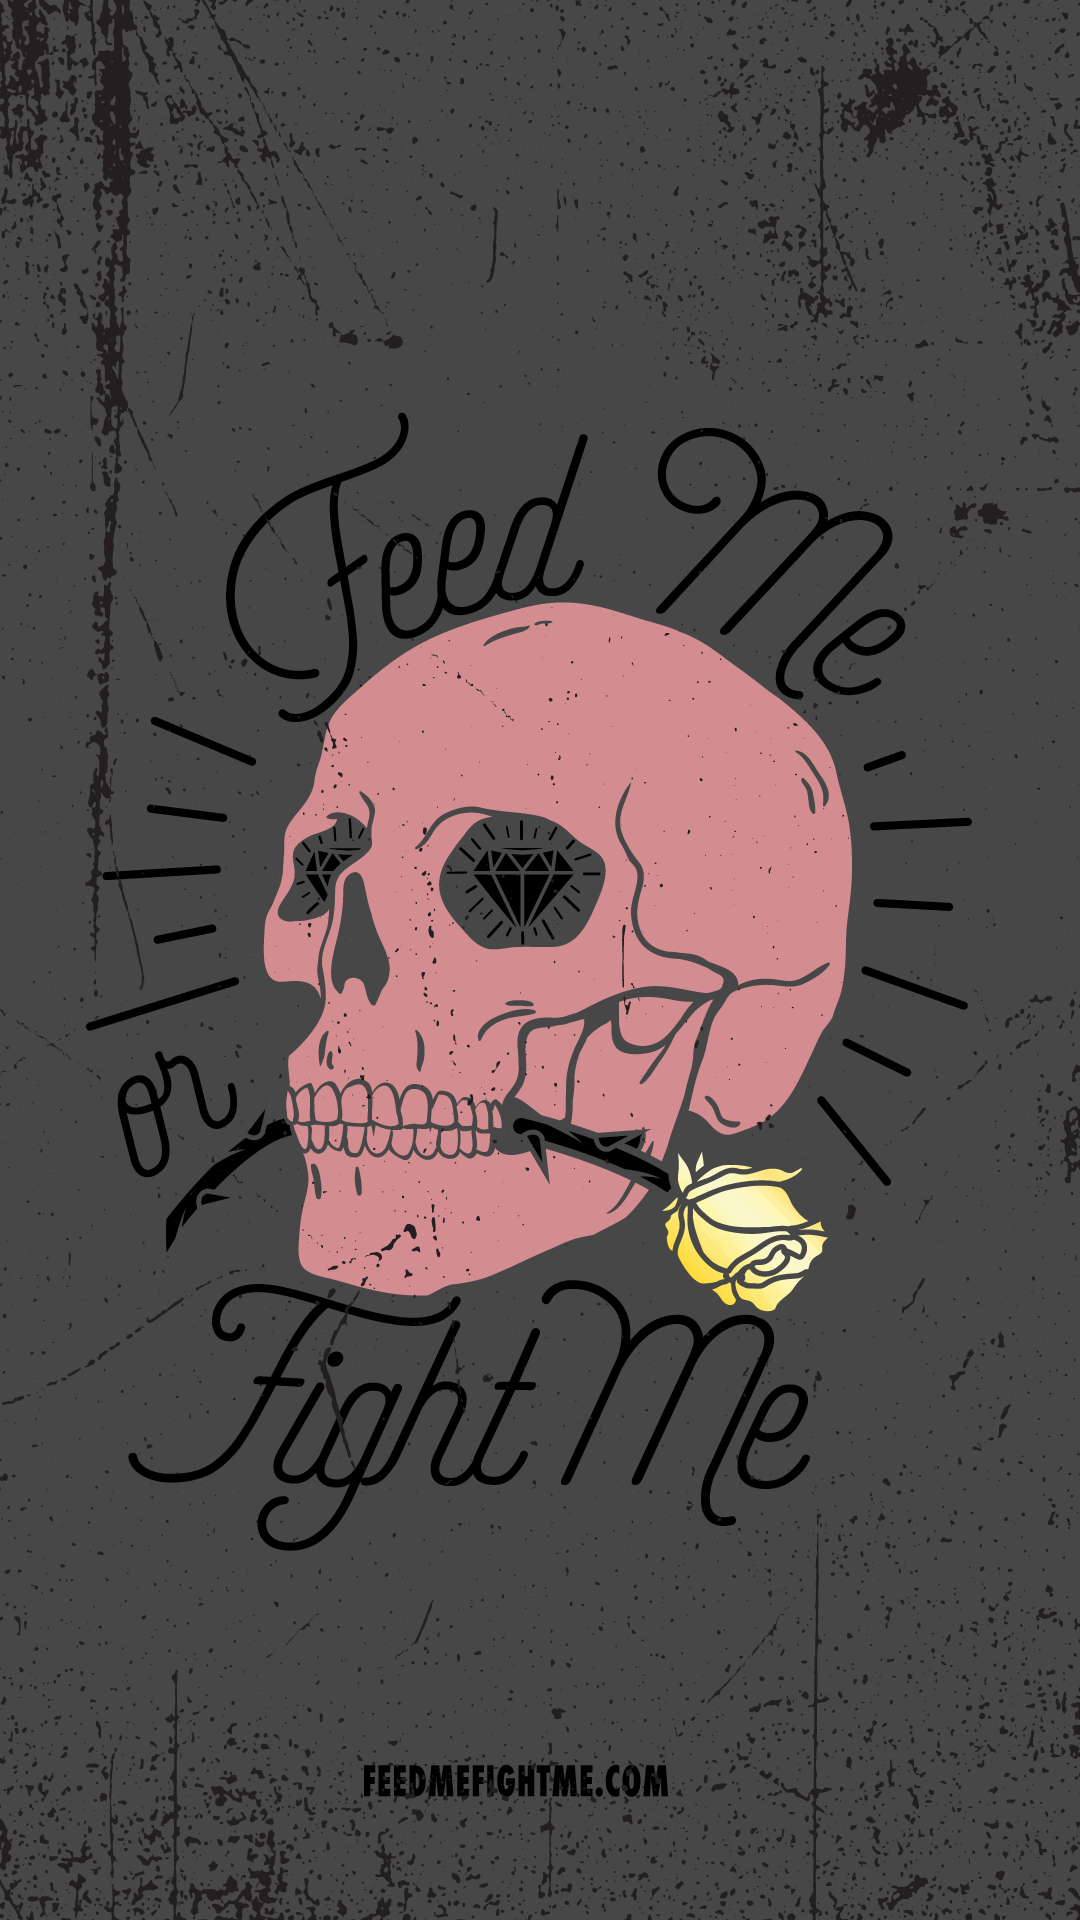 1080x1920 - Feed Me Wallpapers 29